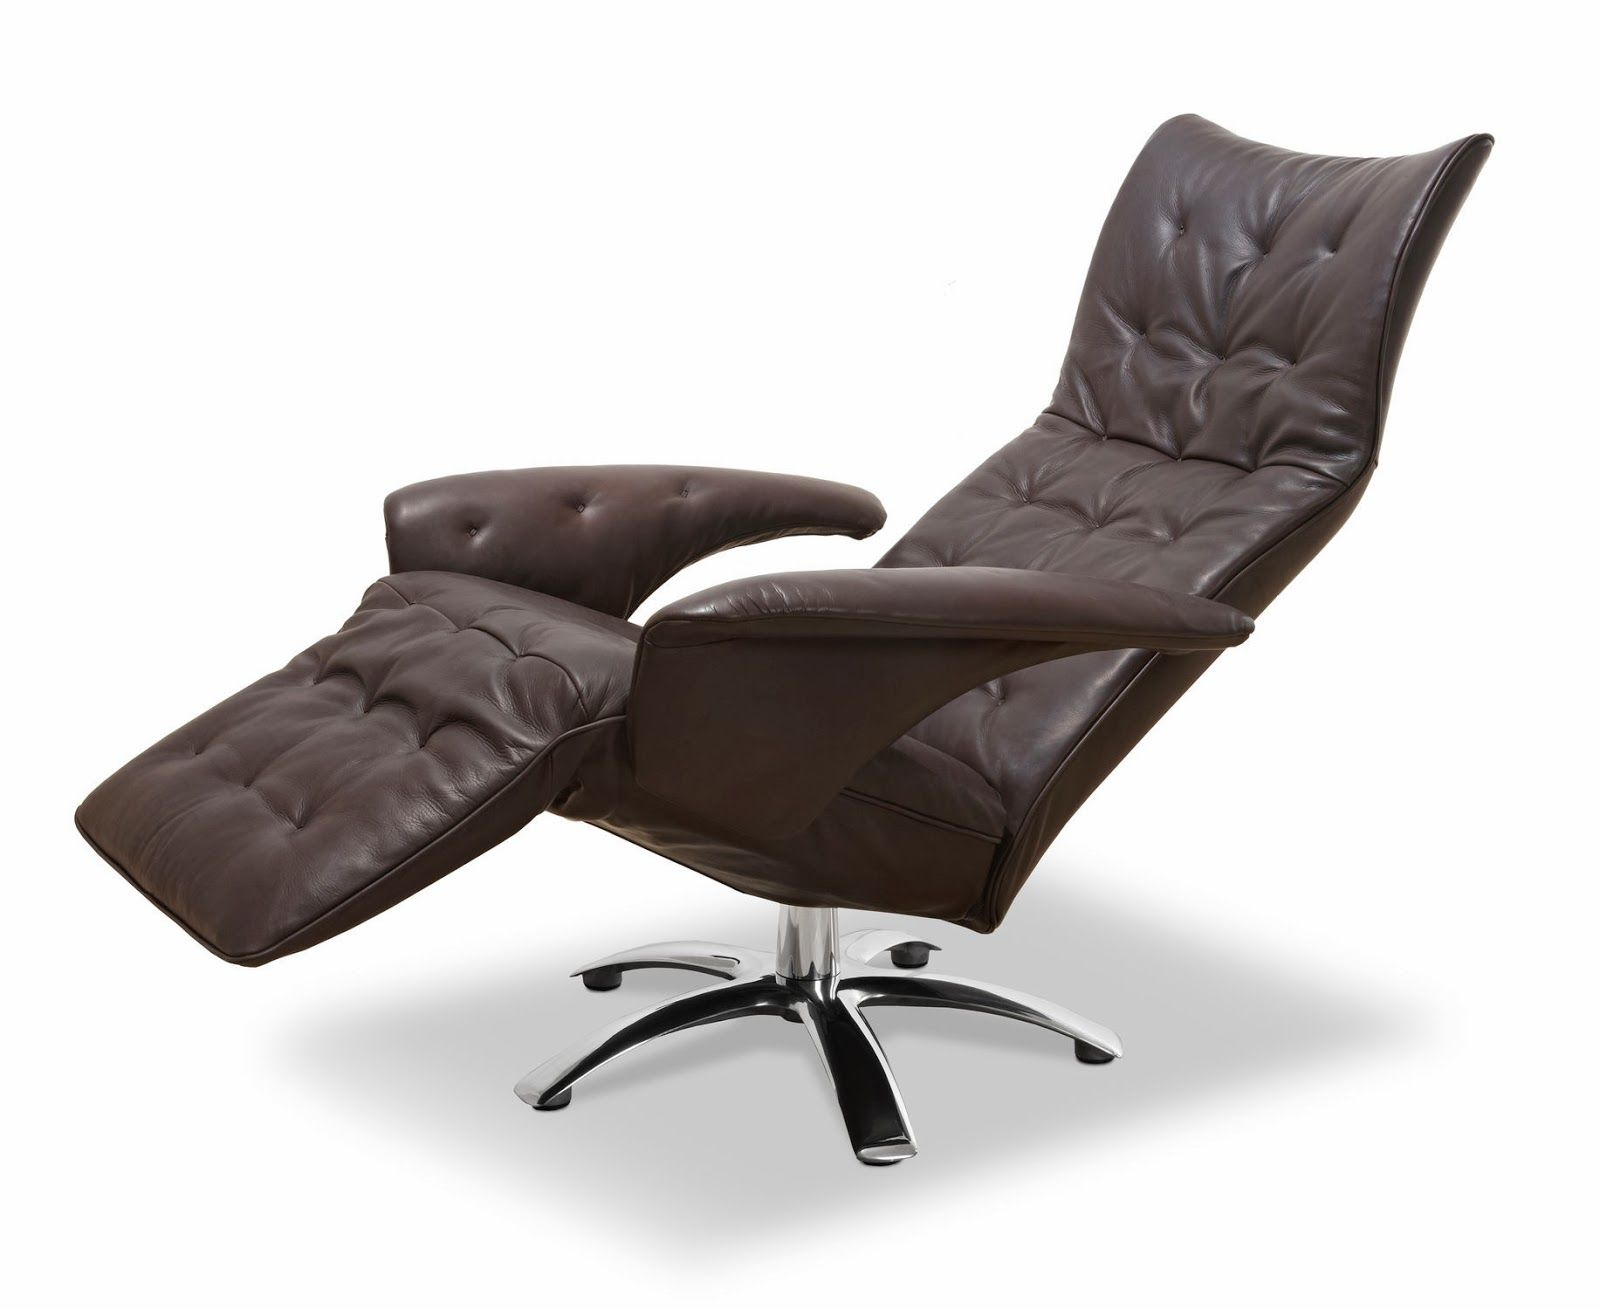 Furniture Modern Recliner Chair Design With Brown Leather Modern Recliner Chair As Swivel Chair Modern Recliner Modern Recliner Chairs Reclining Office Chair